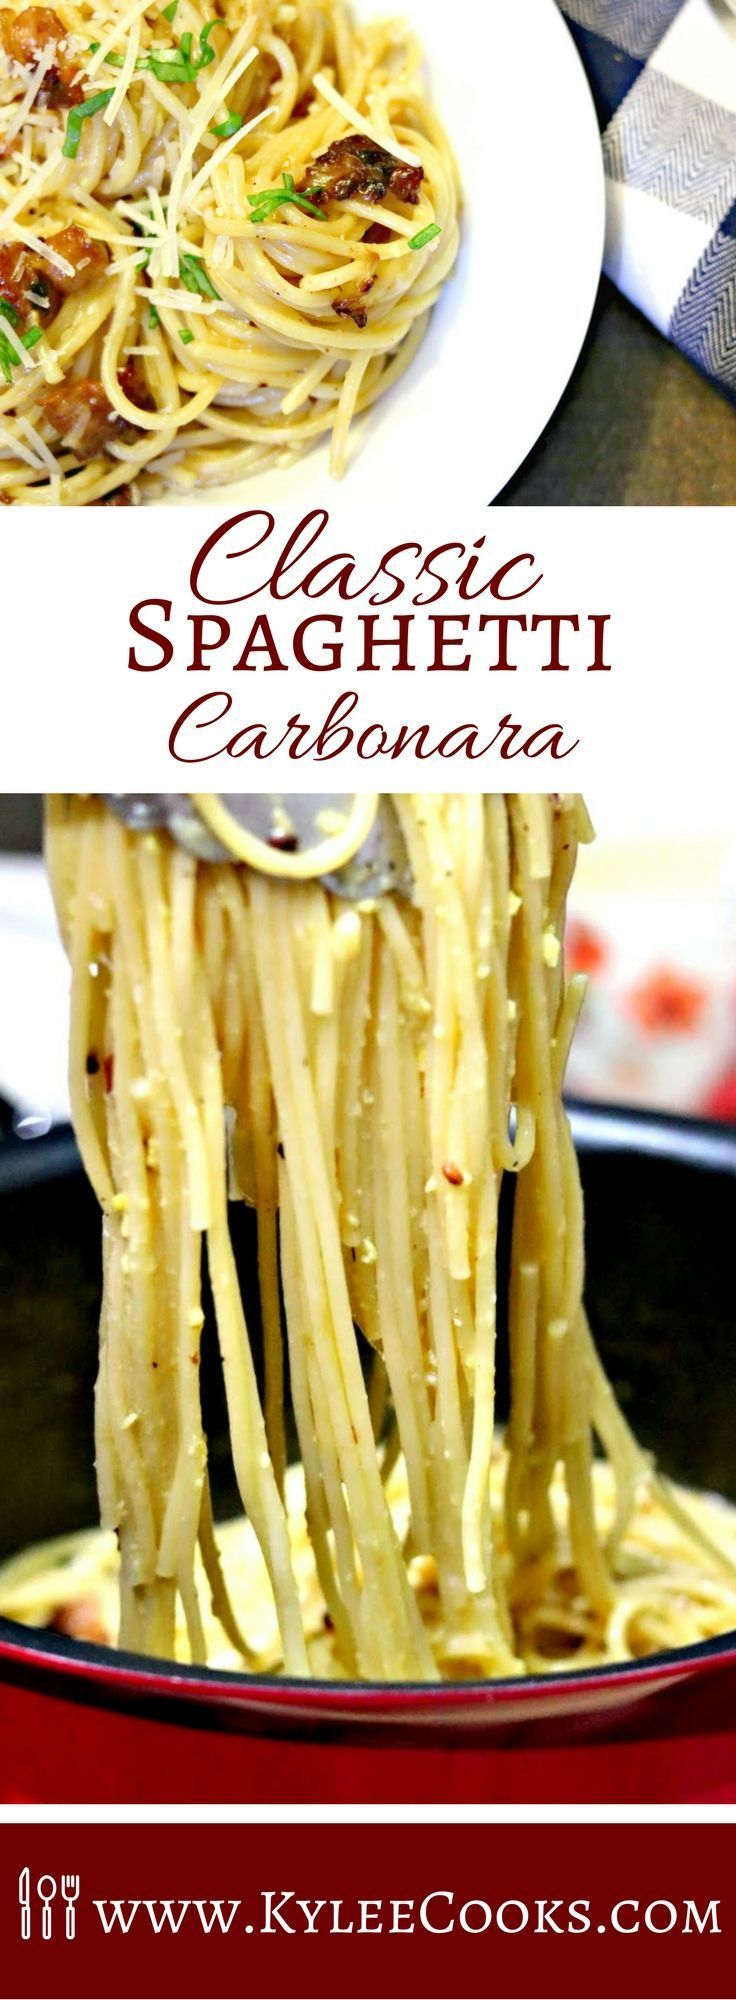 A classic pasta dish using simple ingredients, like a sauce made silky and rich by using eggs, bacon, and parmesan. This Classic Spaghetti Carbonara is comfort food, made right in your own kitchen. /bialettiusa/ #sponsored